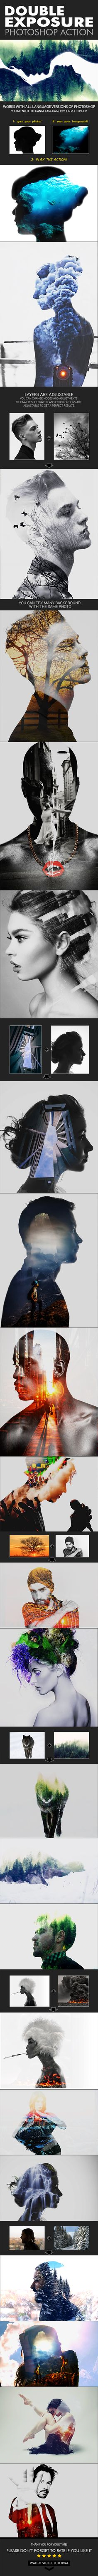 Double Exposure #Action - Actions #Photoshop Download here: https://graphicriver.net/item/double-exposure-action/19588604?ref=alena994